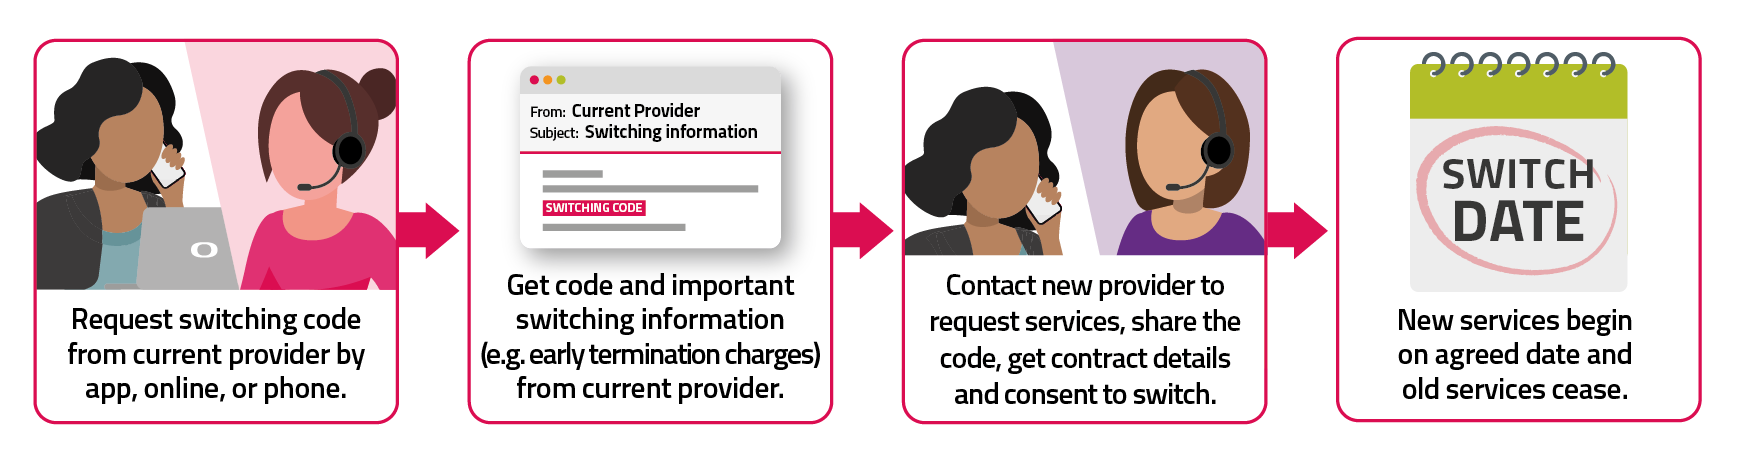 Under Code to Switch, a customer must first contact their current provider by app, online or phone to get information about the implications of switching as well as a switching code. If they decide they want to go ahead with the switch after considering the switching information, they contact the new provider and give them the switching code. The new provider then manages the switch.